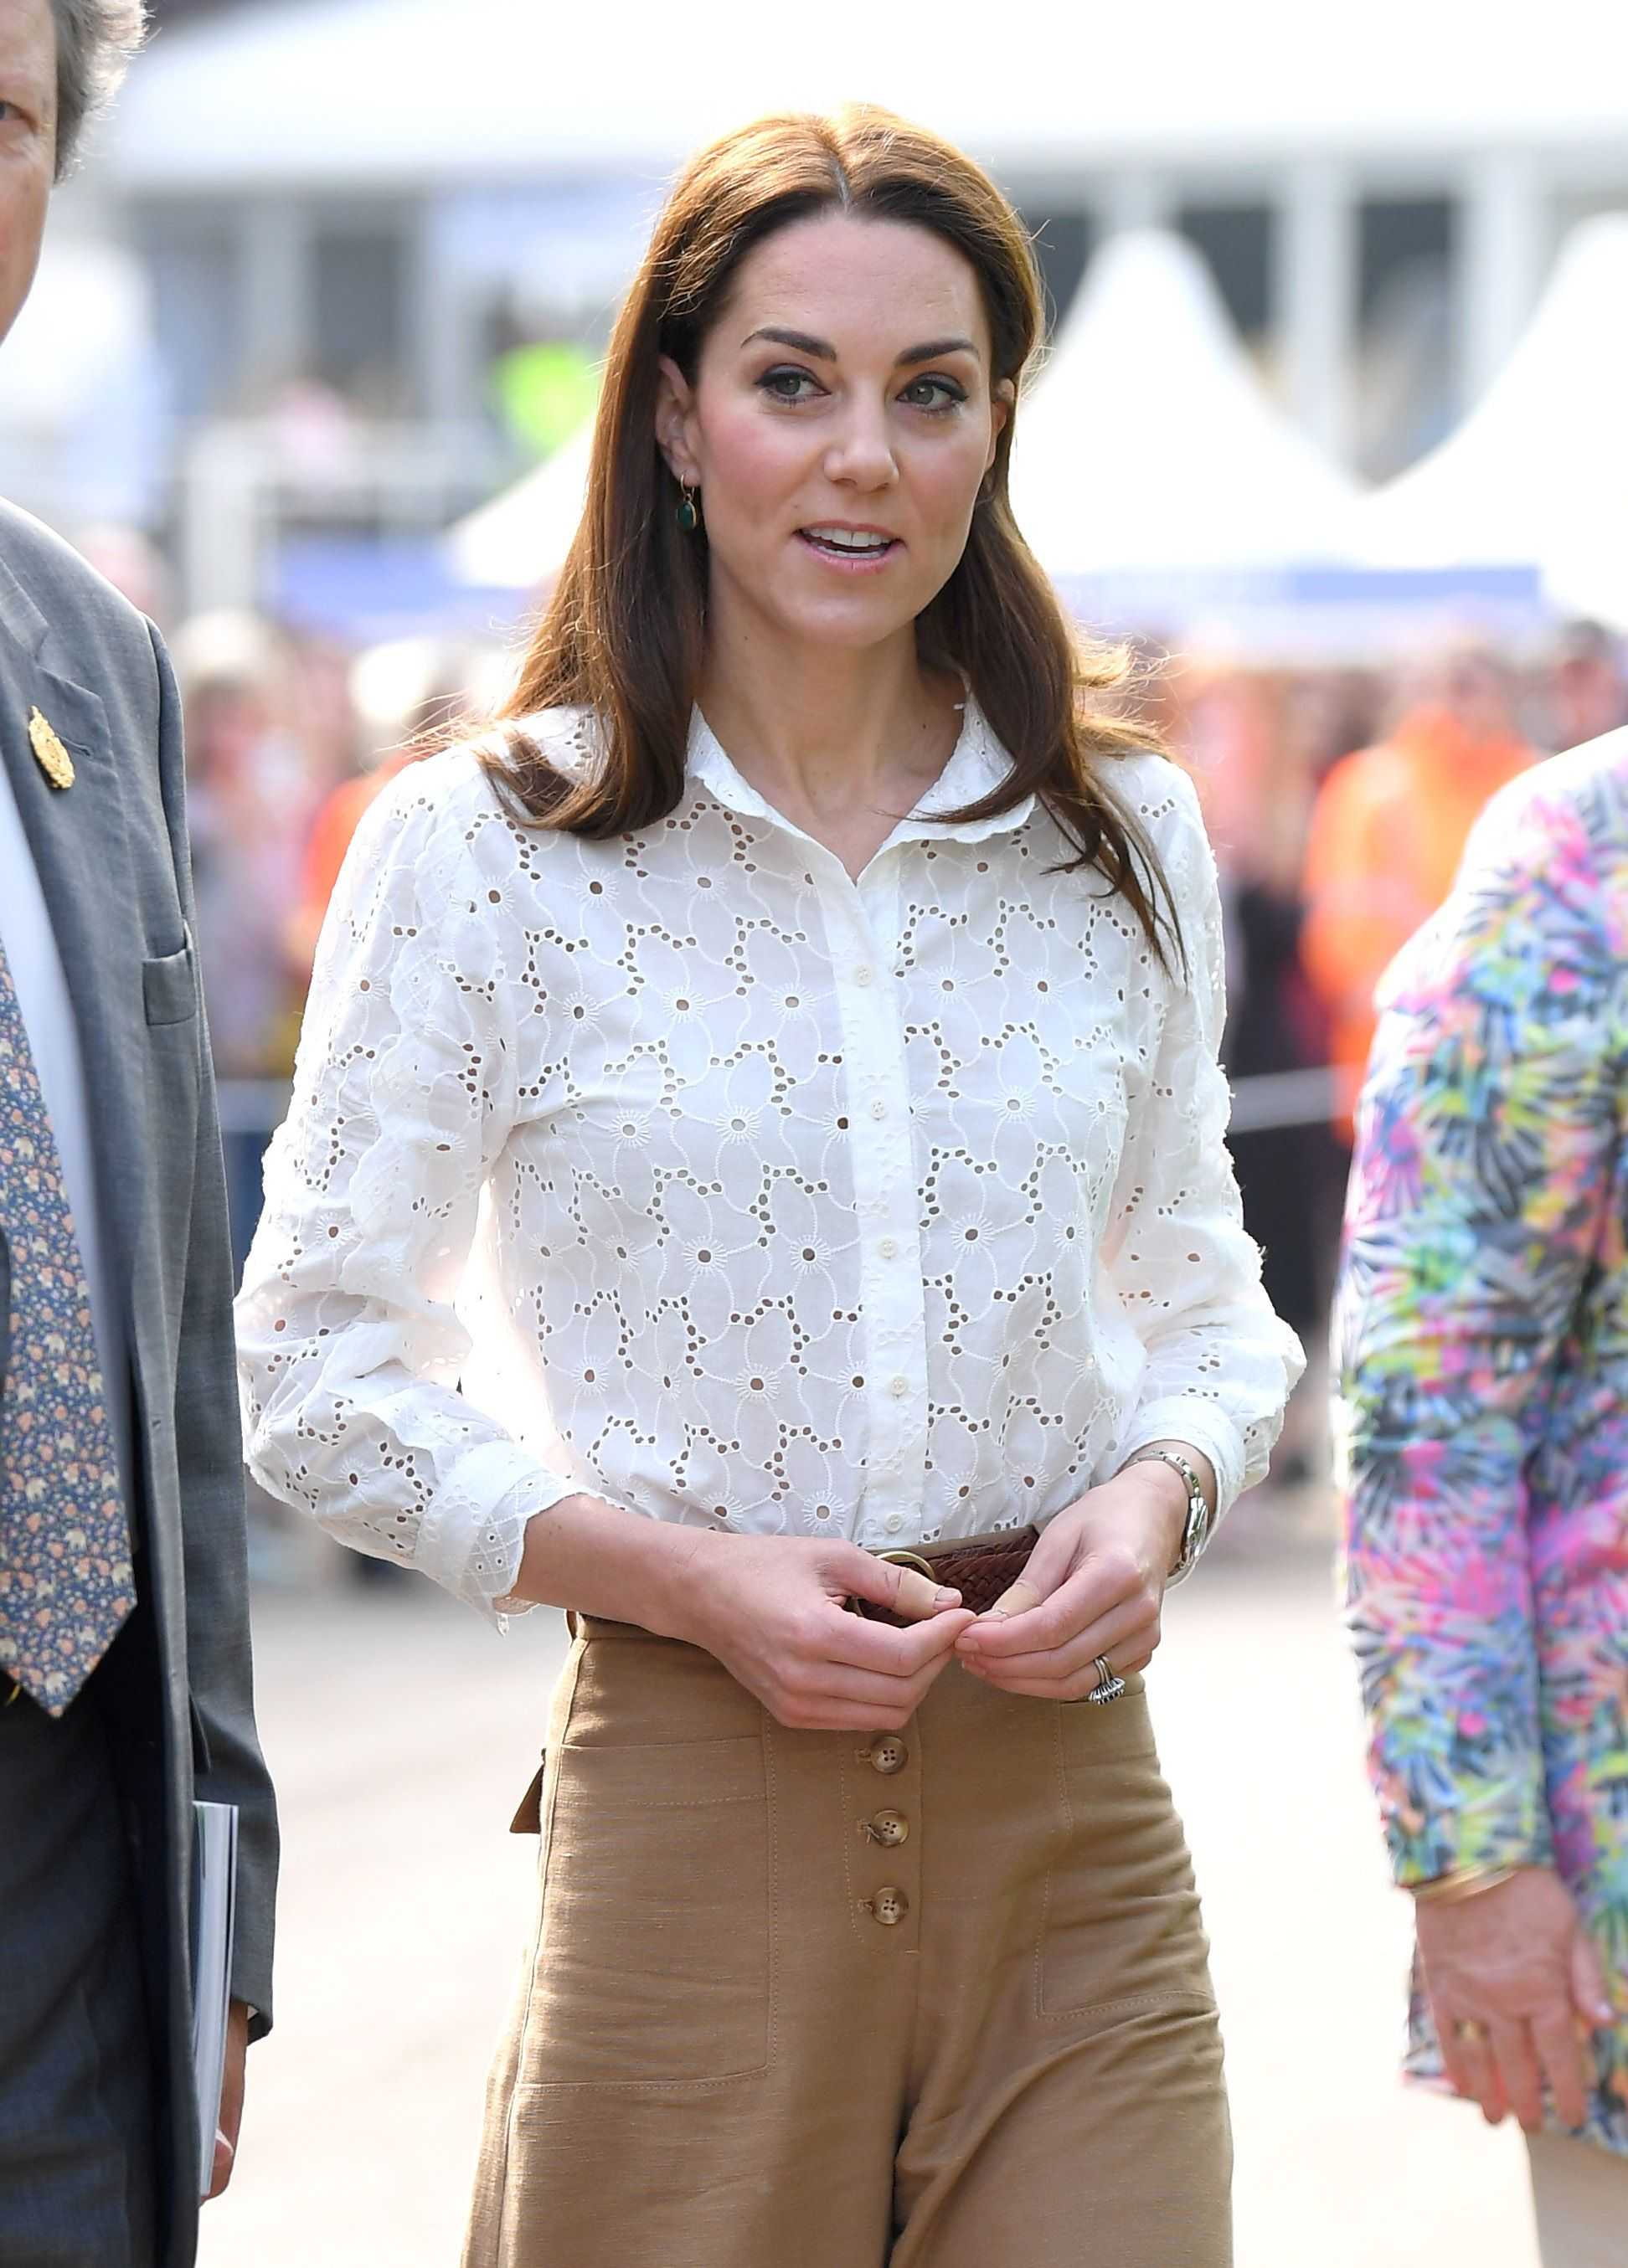 Kate Middleton Wore the Duchess Version of a Gardening Outfit: an Eyelet Blouse, Culottes, and Sneakers